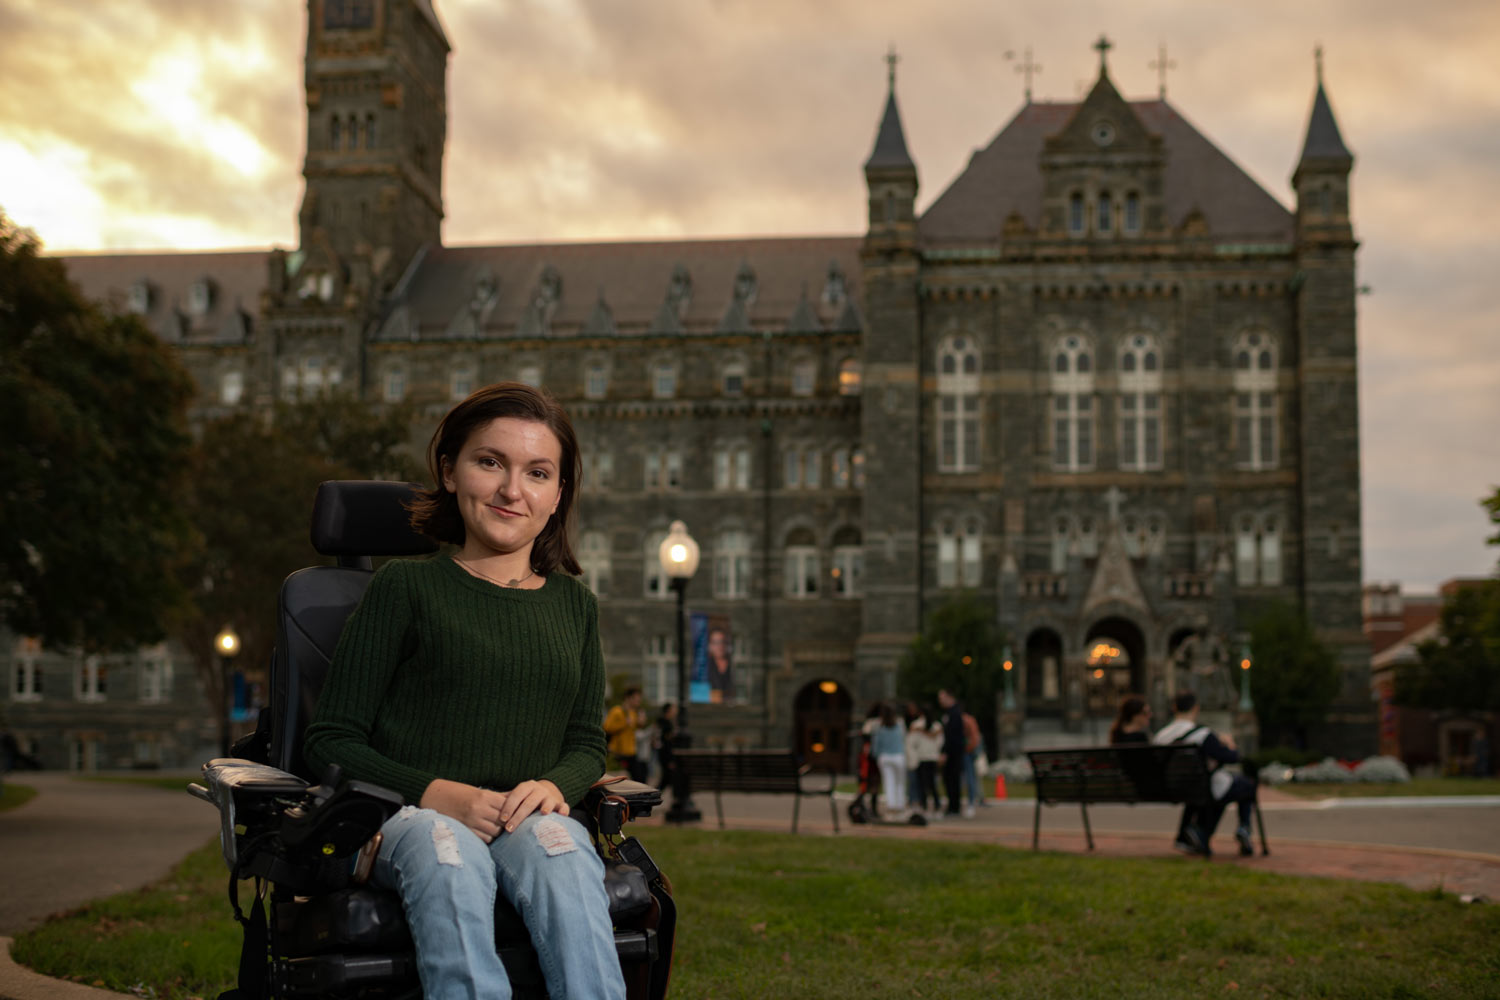 Woman in wheelchair in front an old brick building on a college campus.